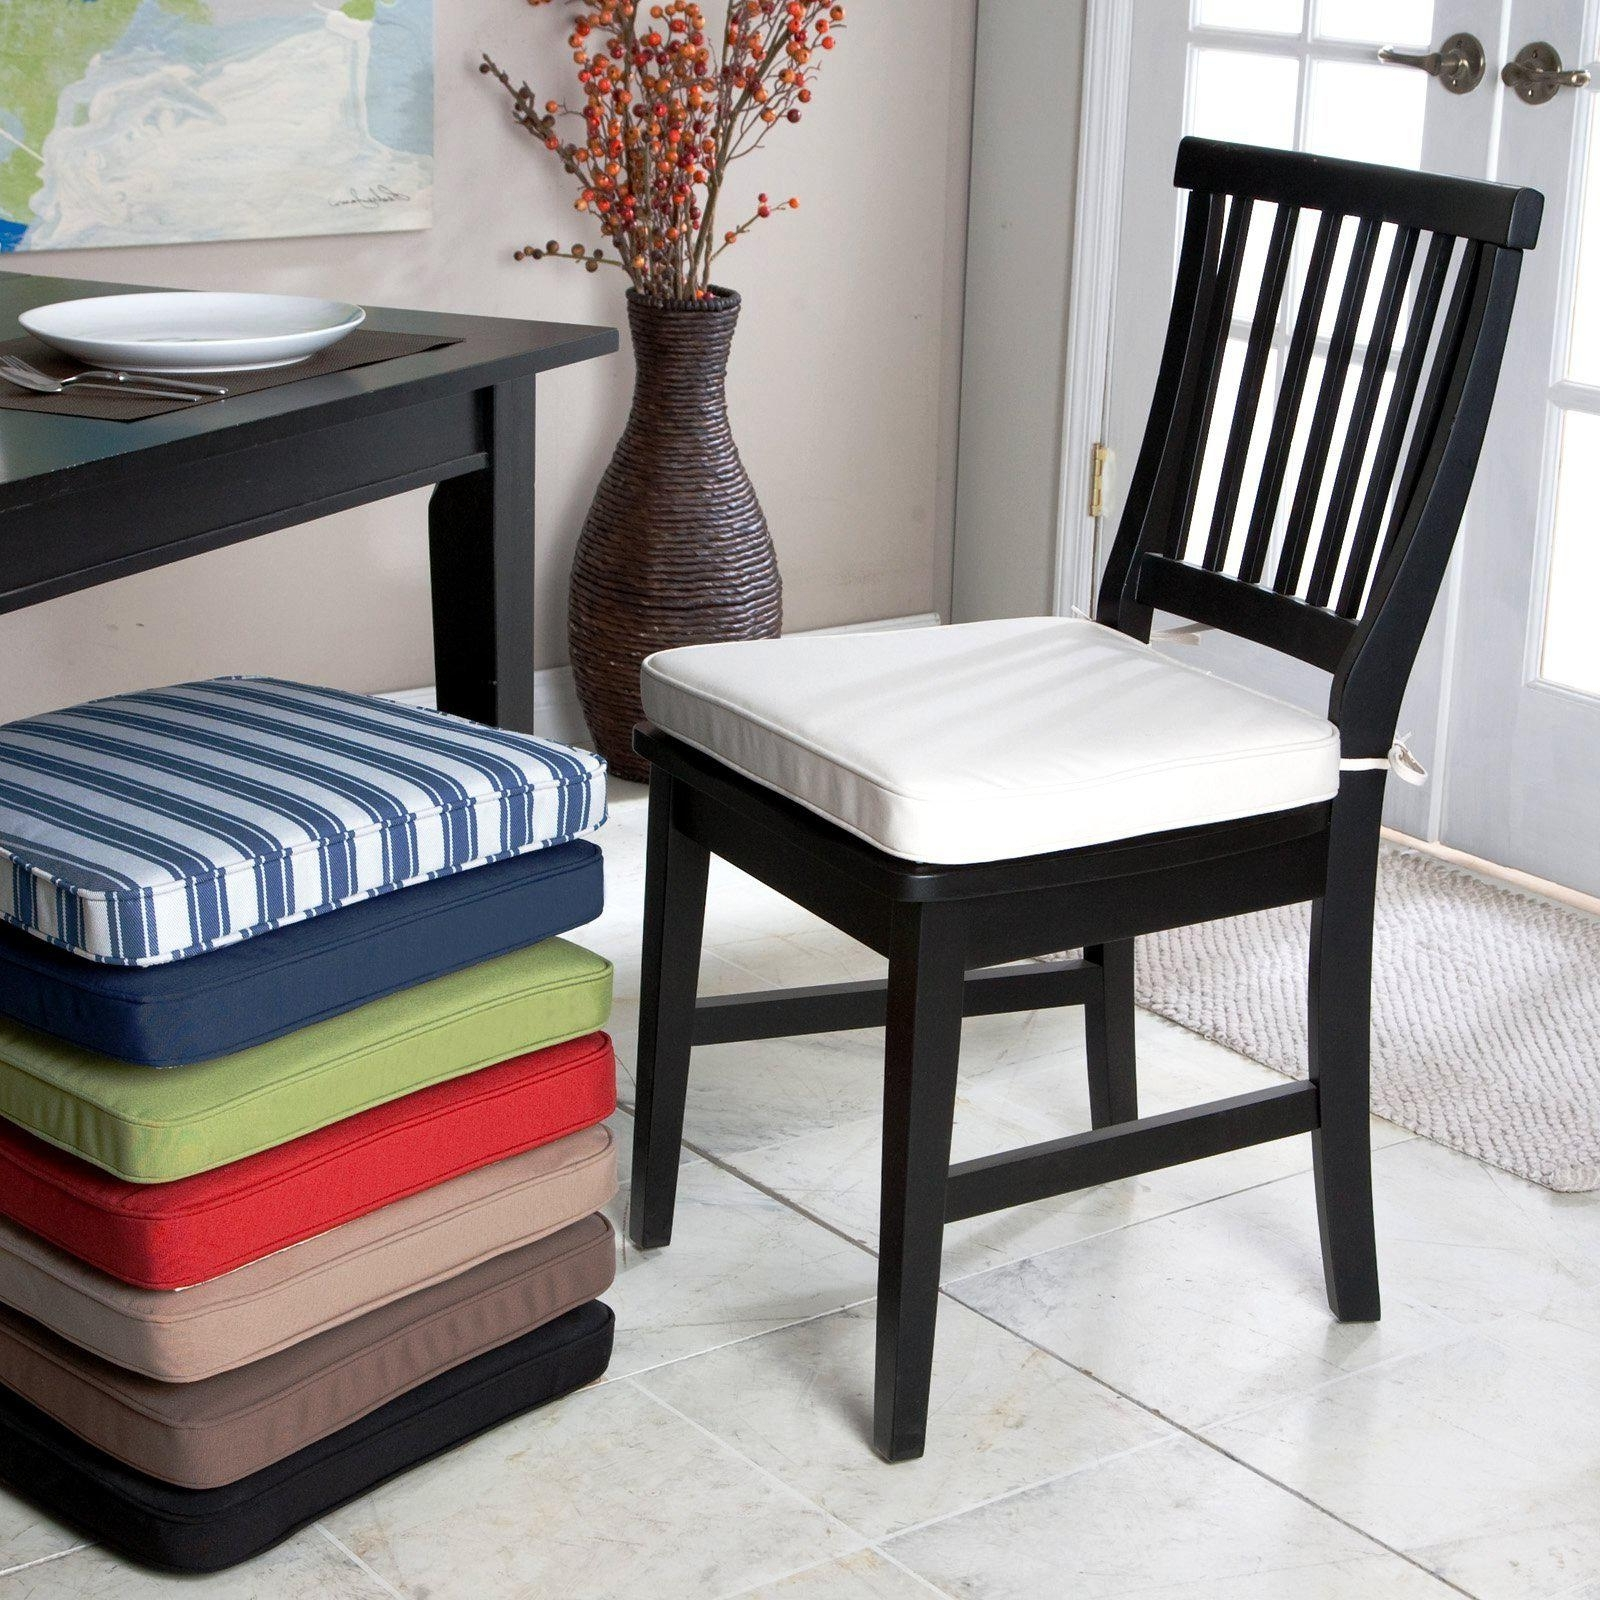 Rocking Chairs At Wayfair Inside 2018 Wayfair Rocking Chair Cushions — Independent Kitchen & Bath (View 8 of 15)